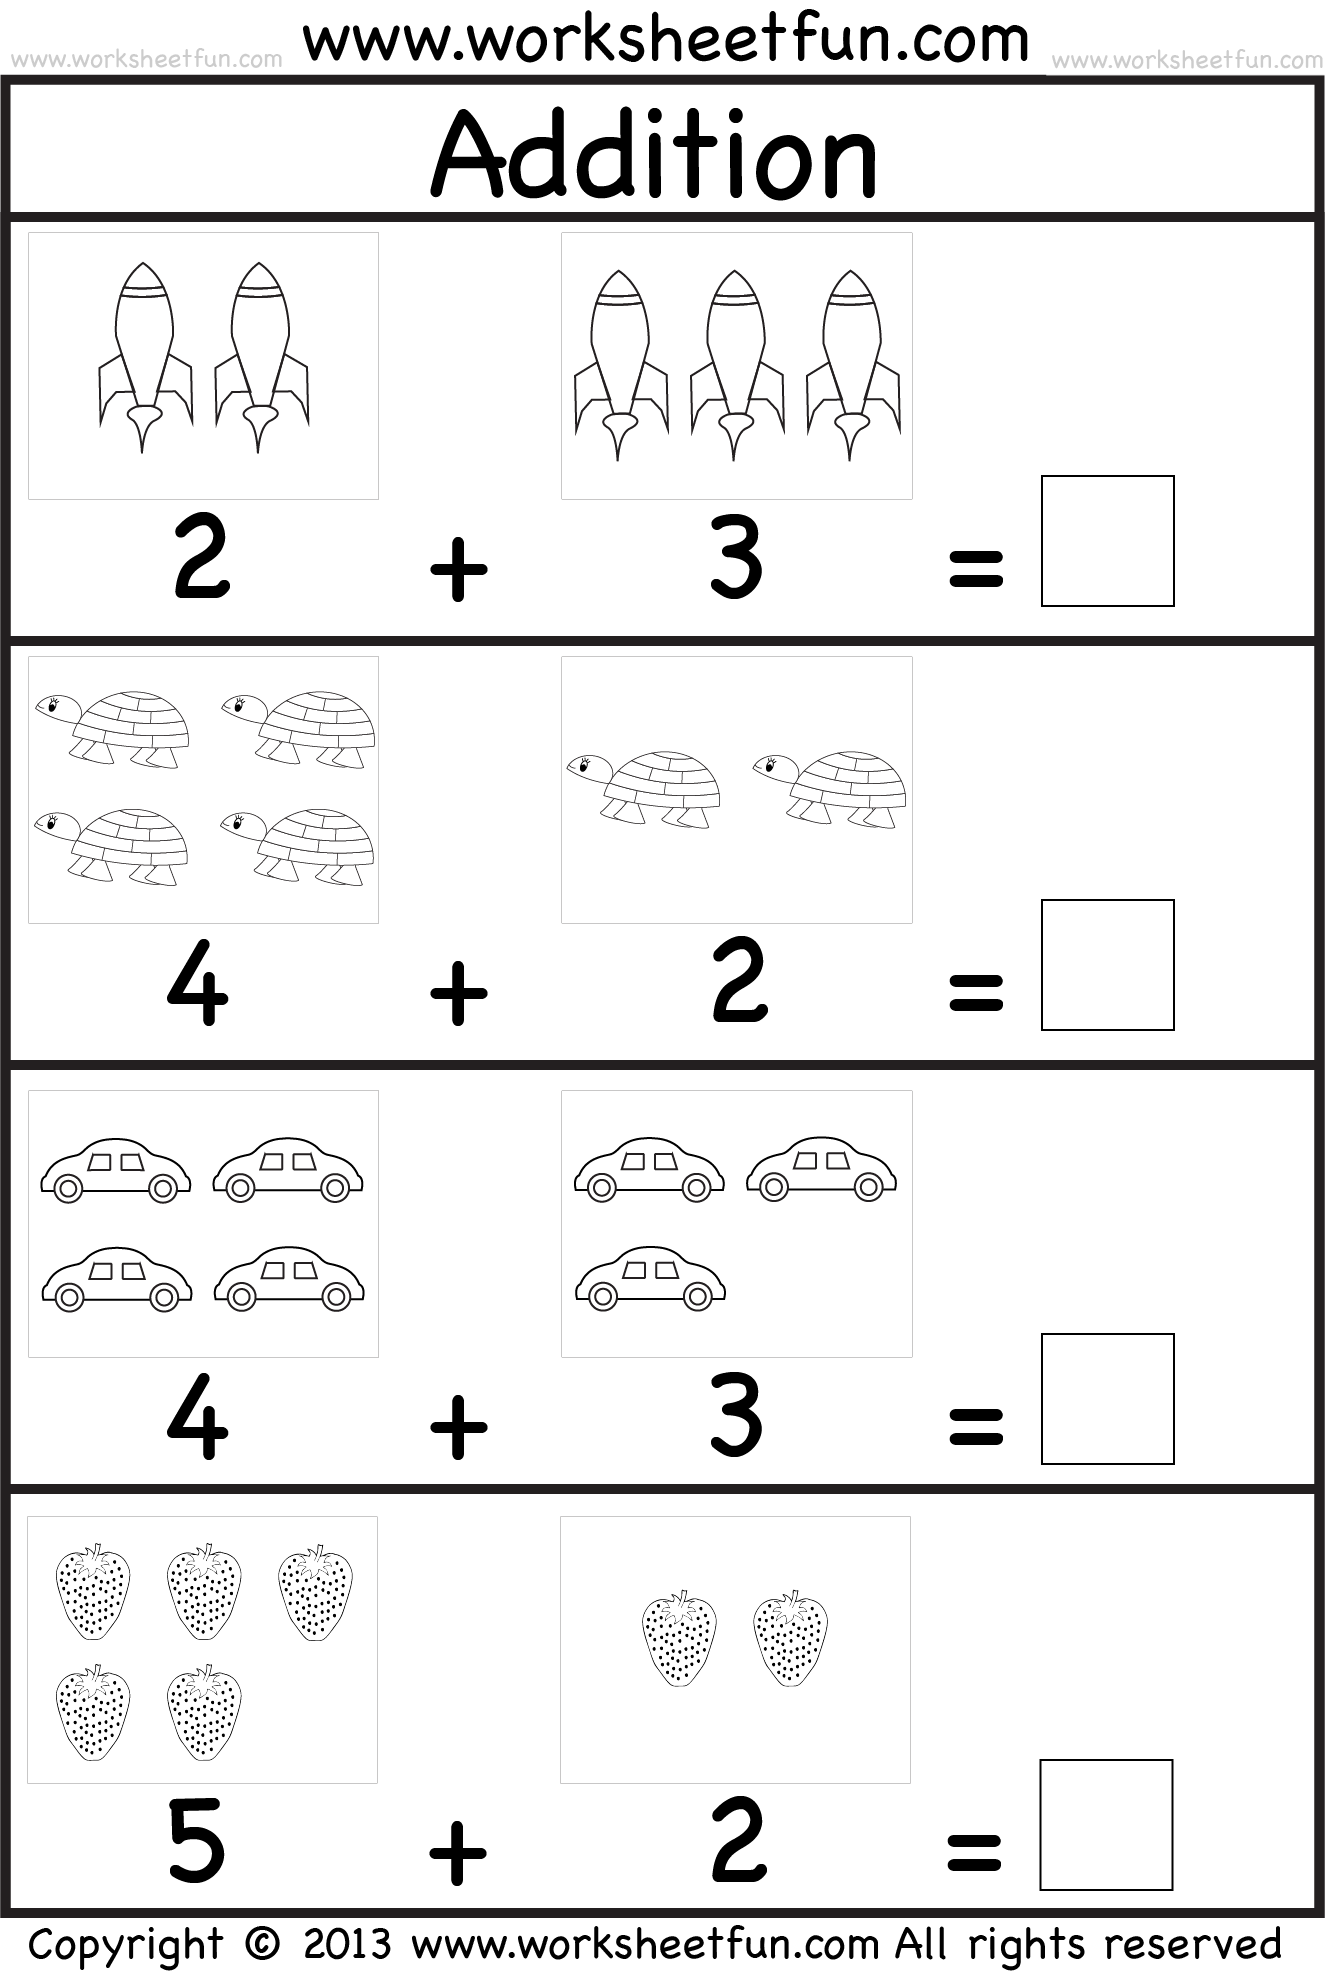 Picture Addition u2013 Beginner Addition u2013 Kindergarten Addition u2013 5 Worksheets / FREE Printable ...